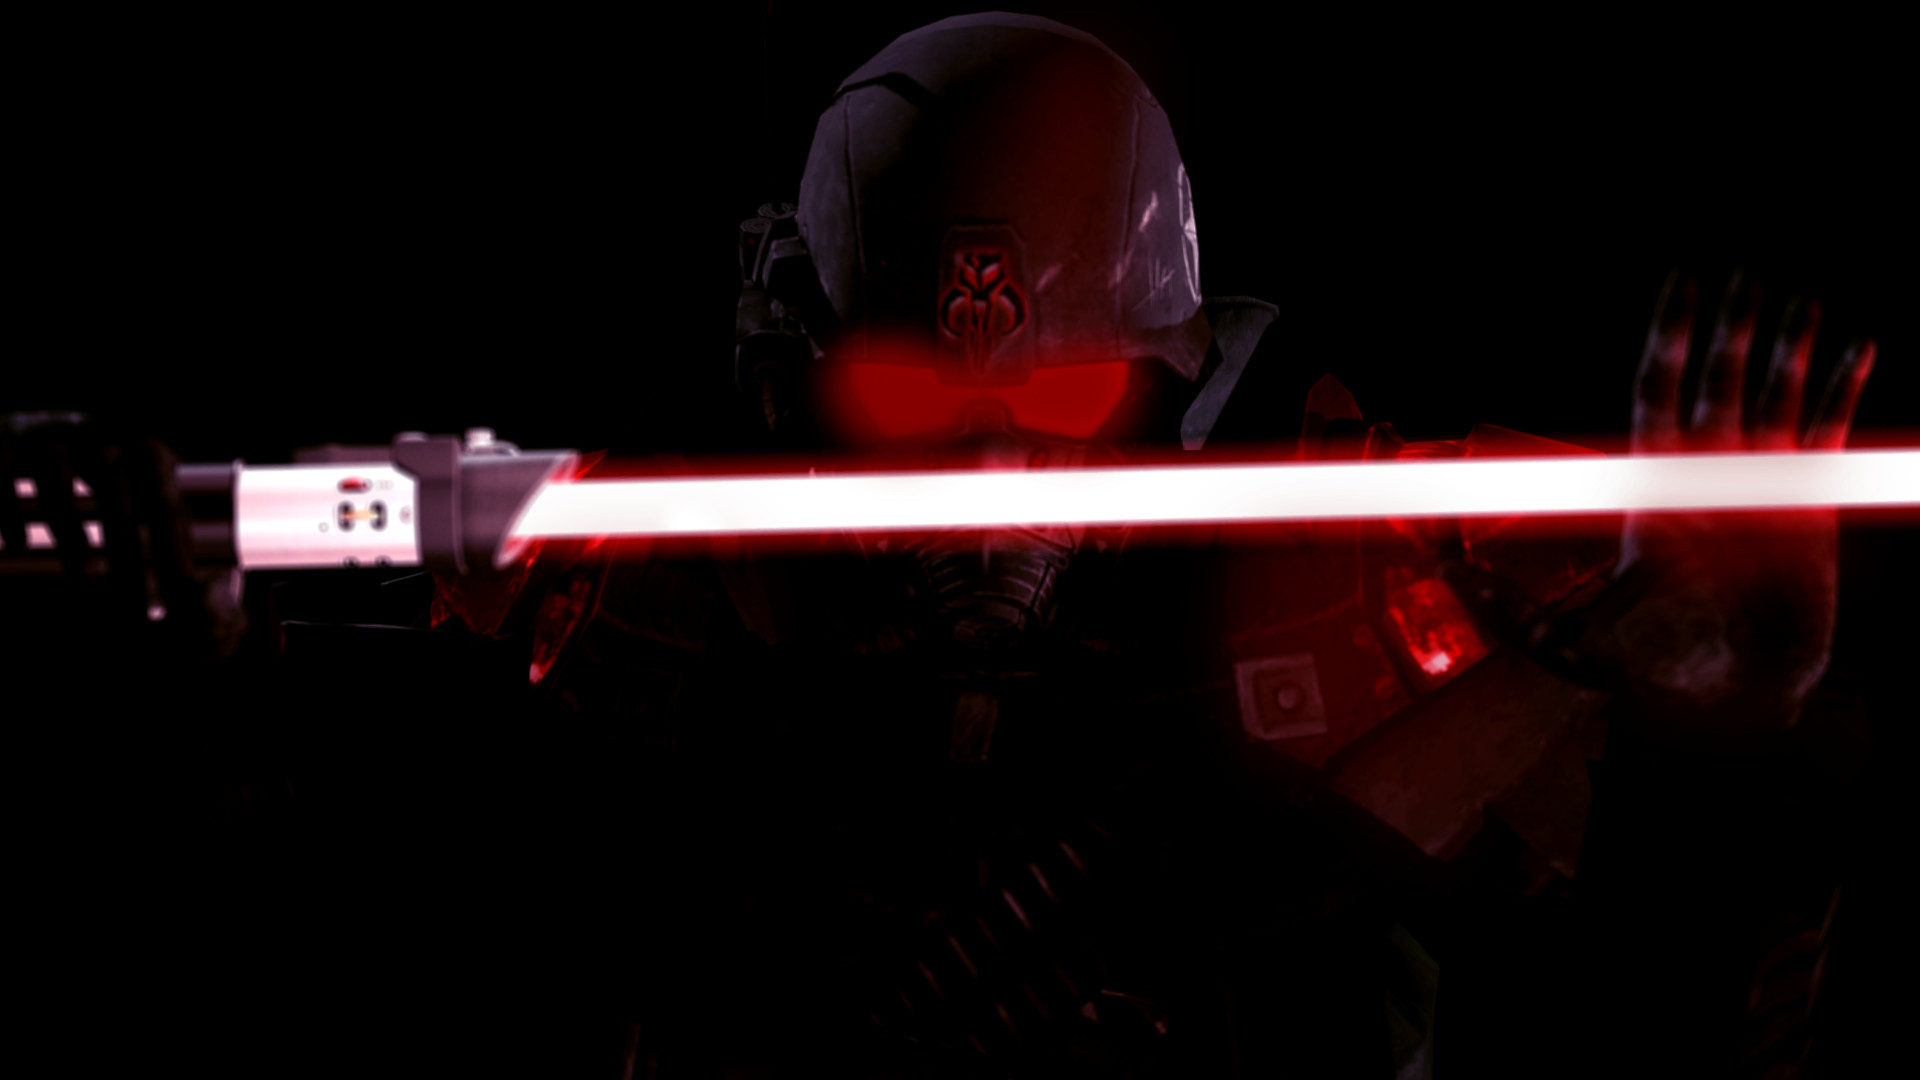 the sith lord by witchygmod fan art wallpaper games 2013 2014 .